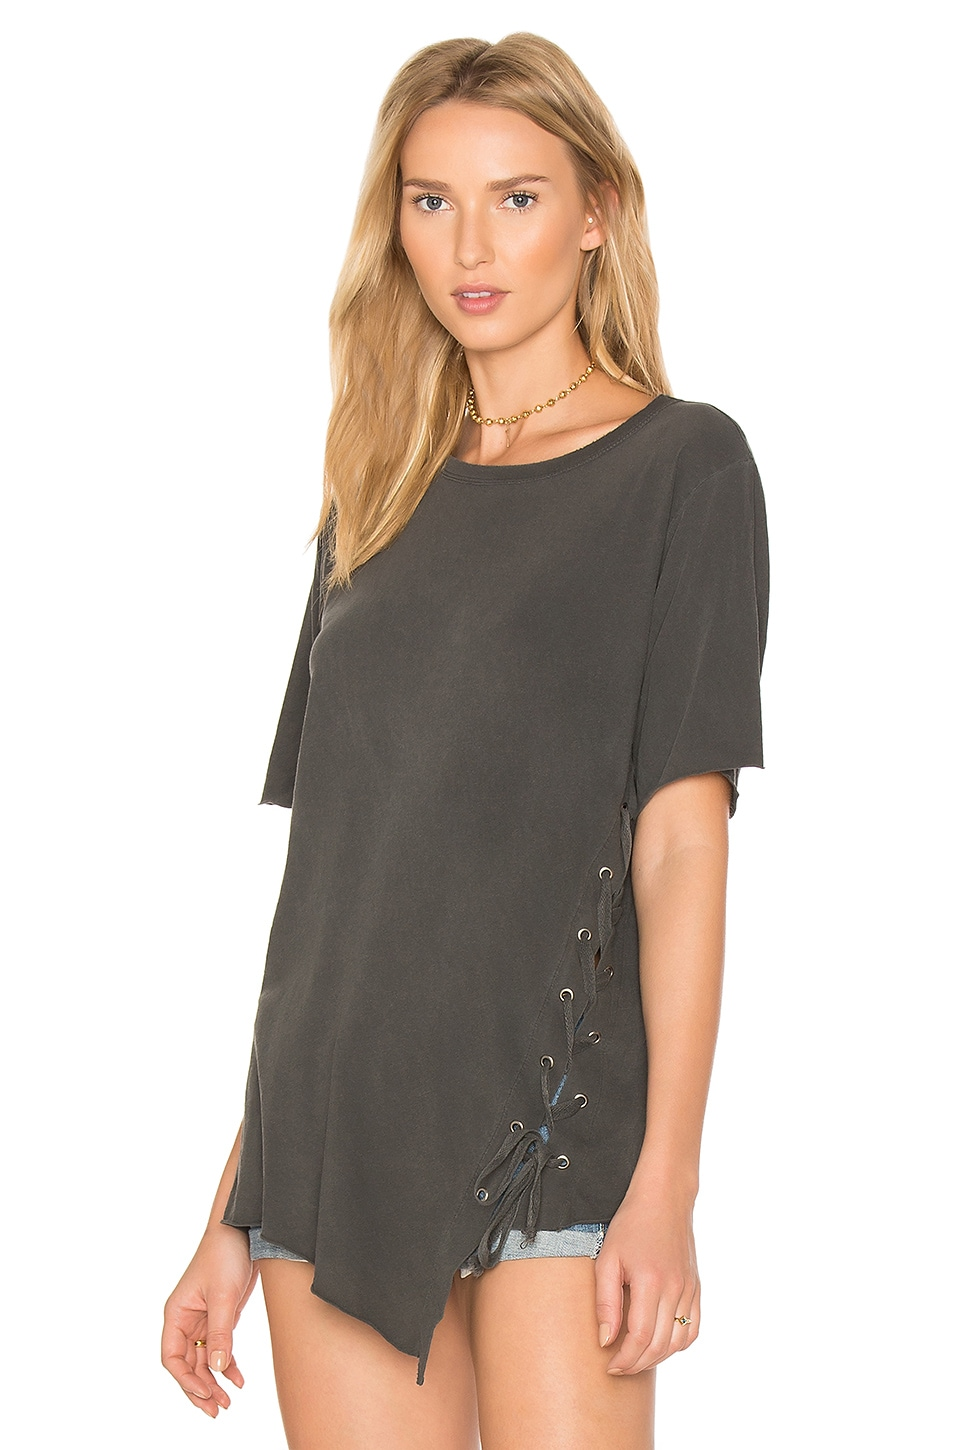 Finley Tee by NSF